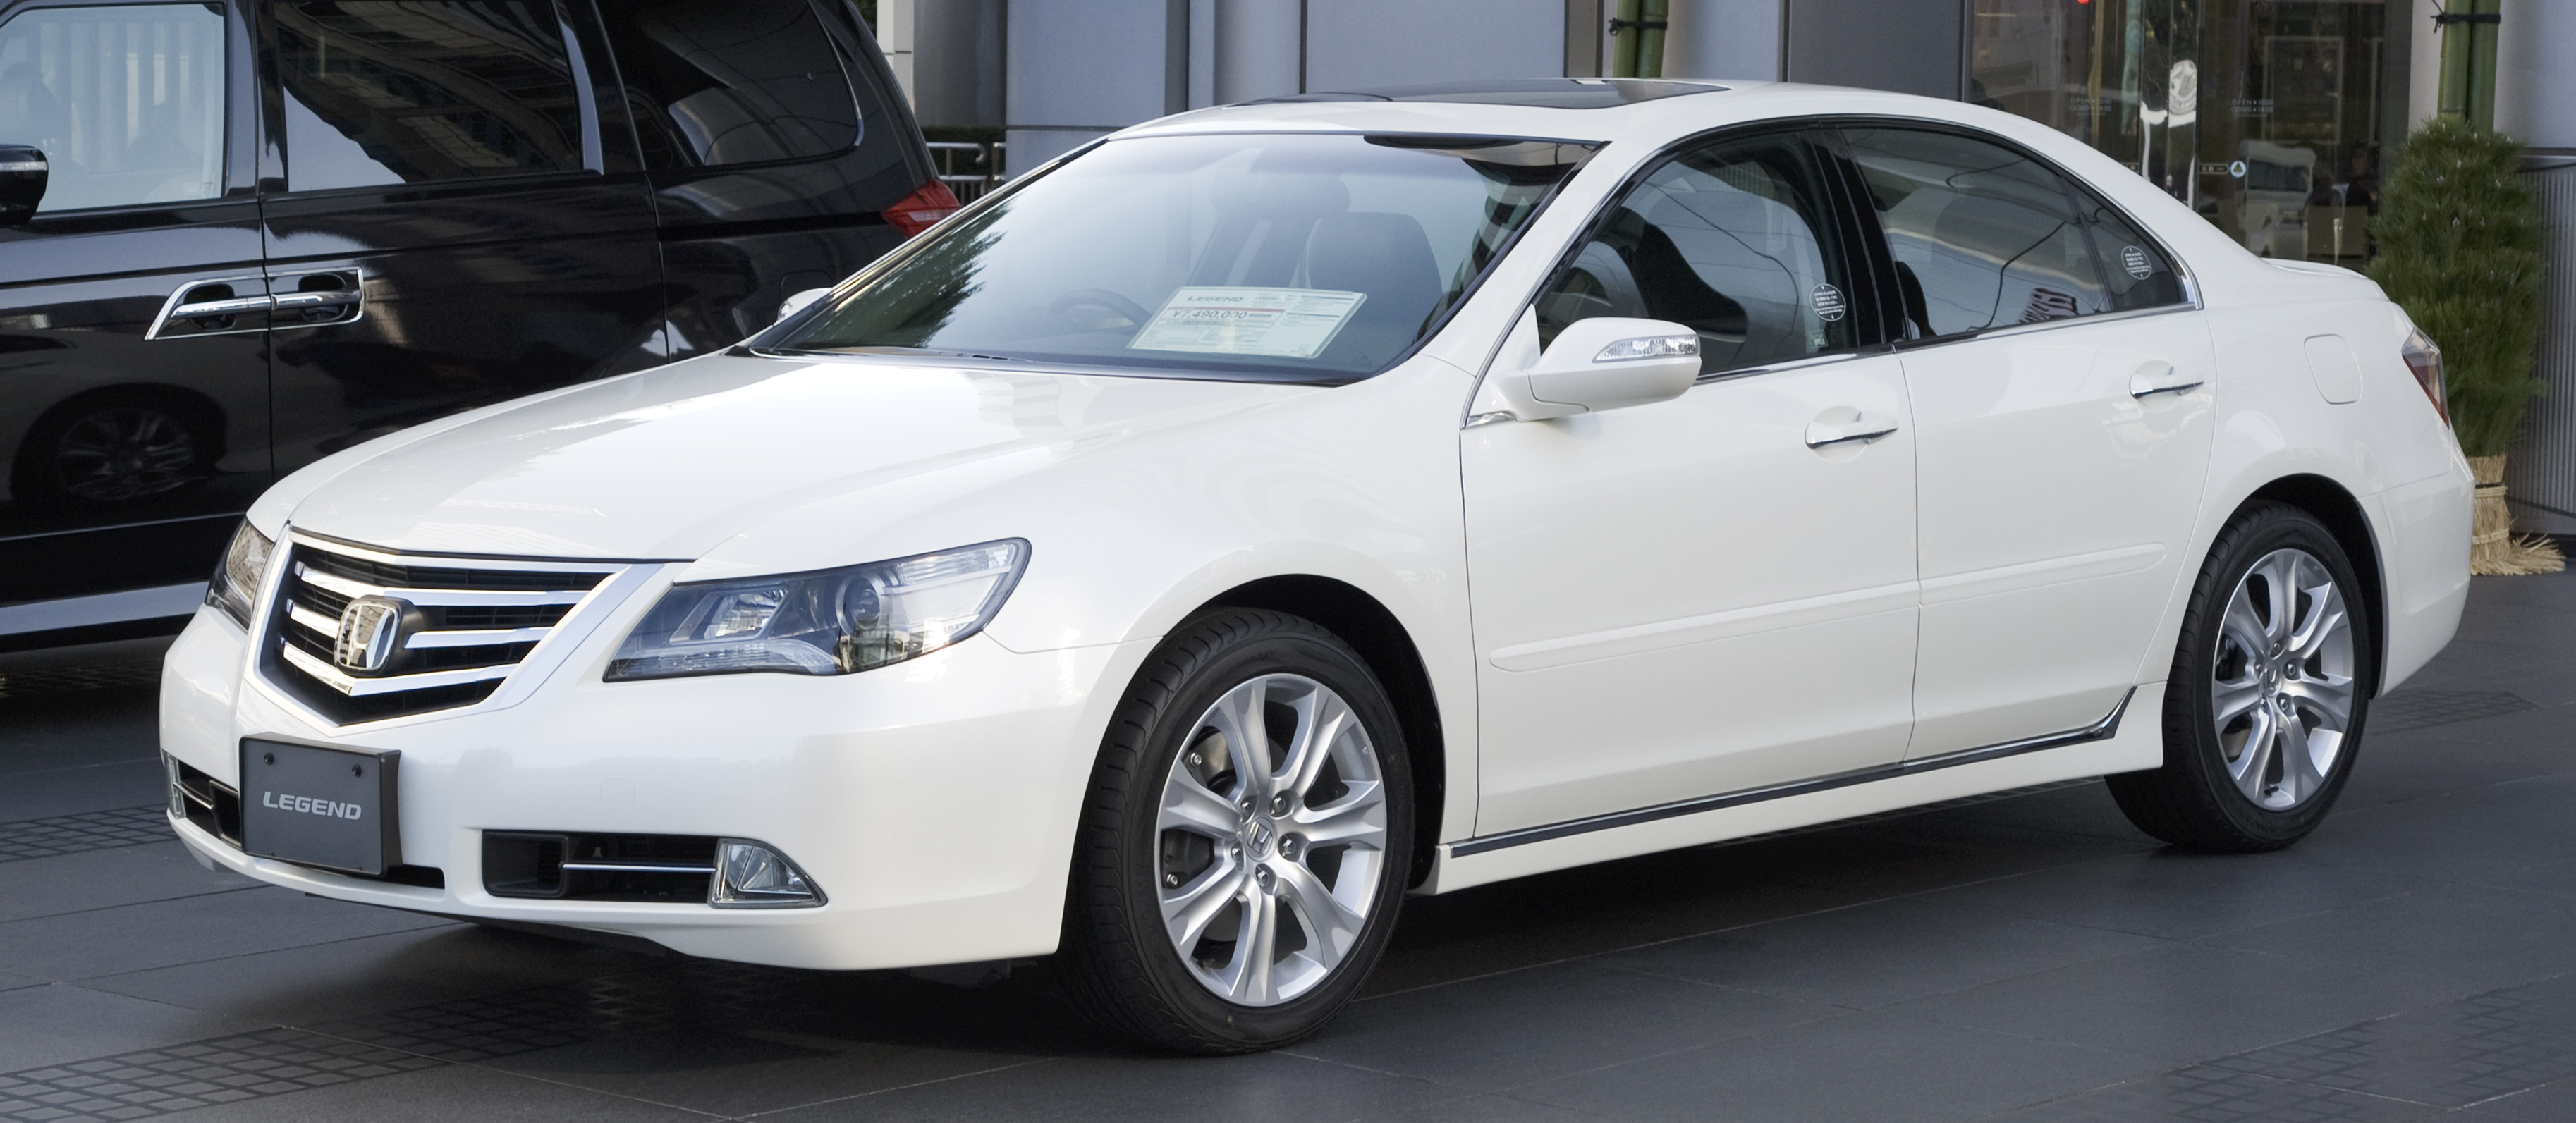 2009 Honda Legend #2